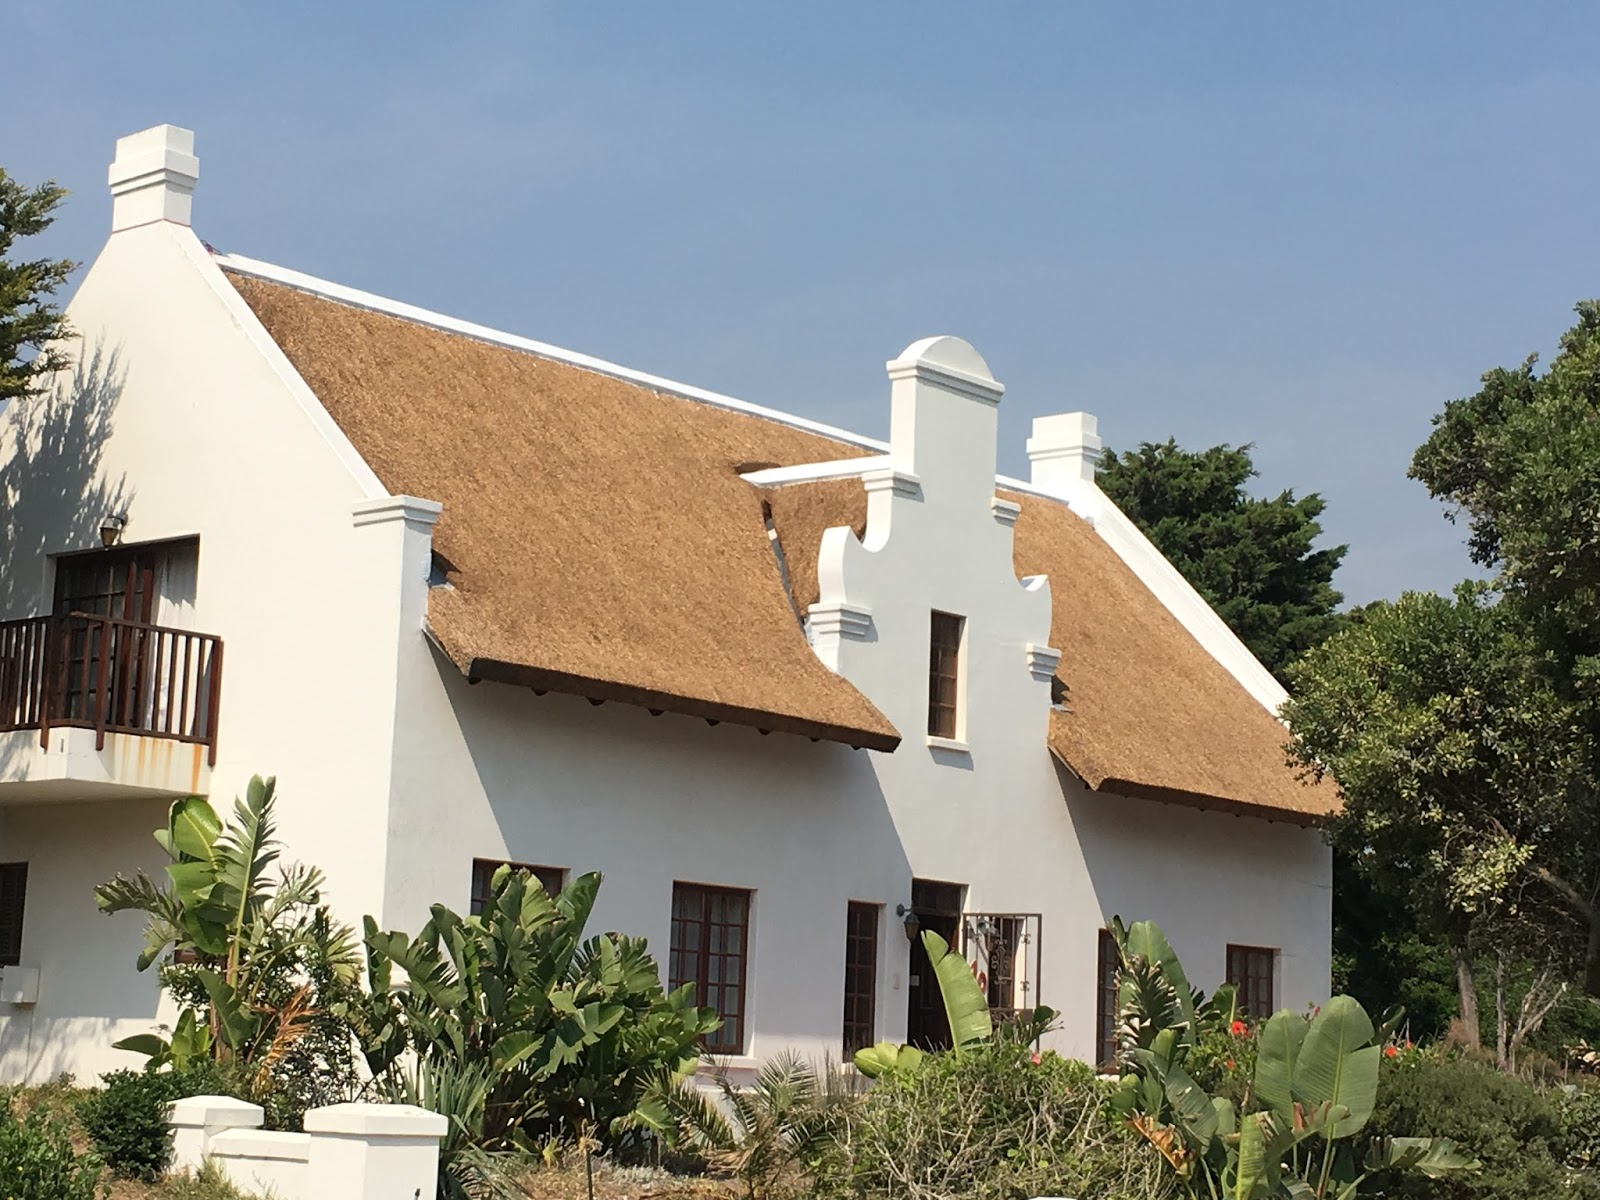 New Thatched Roof in Cape St. Francis